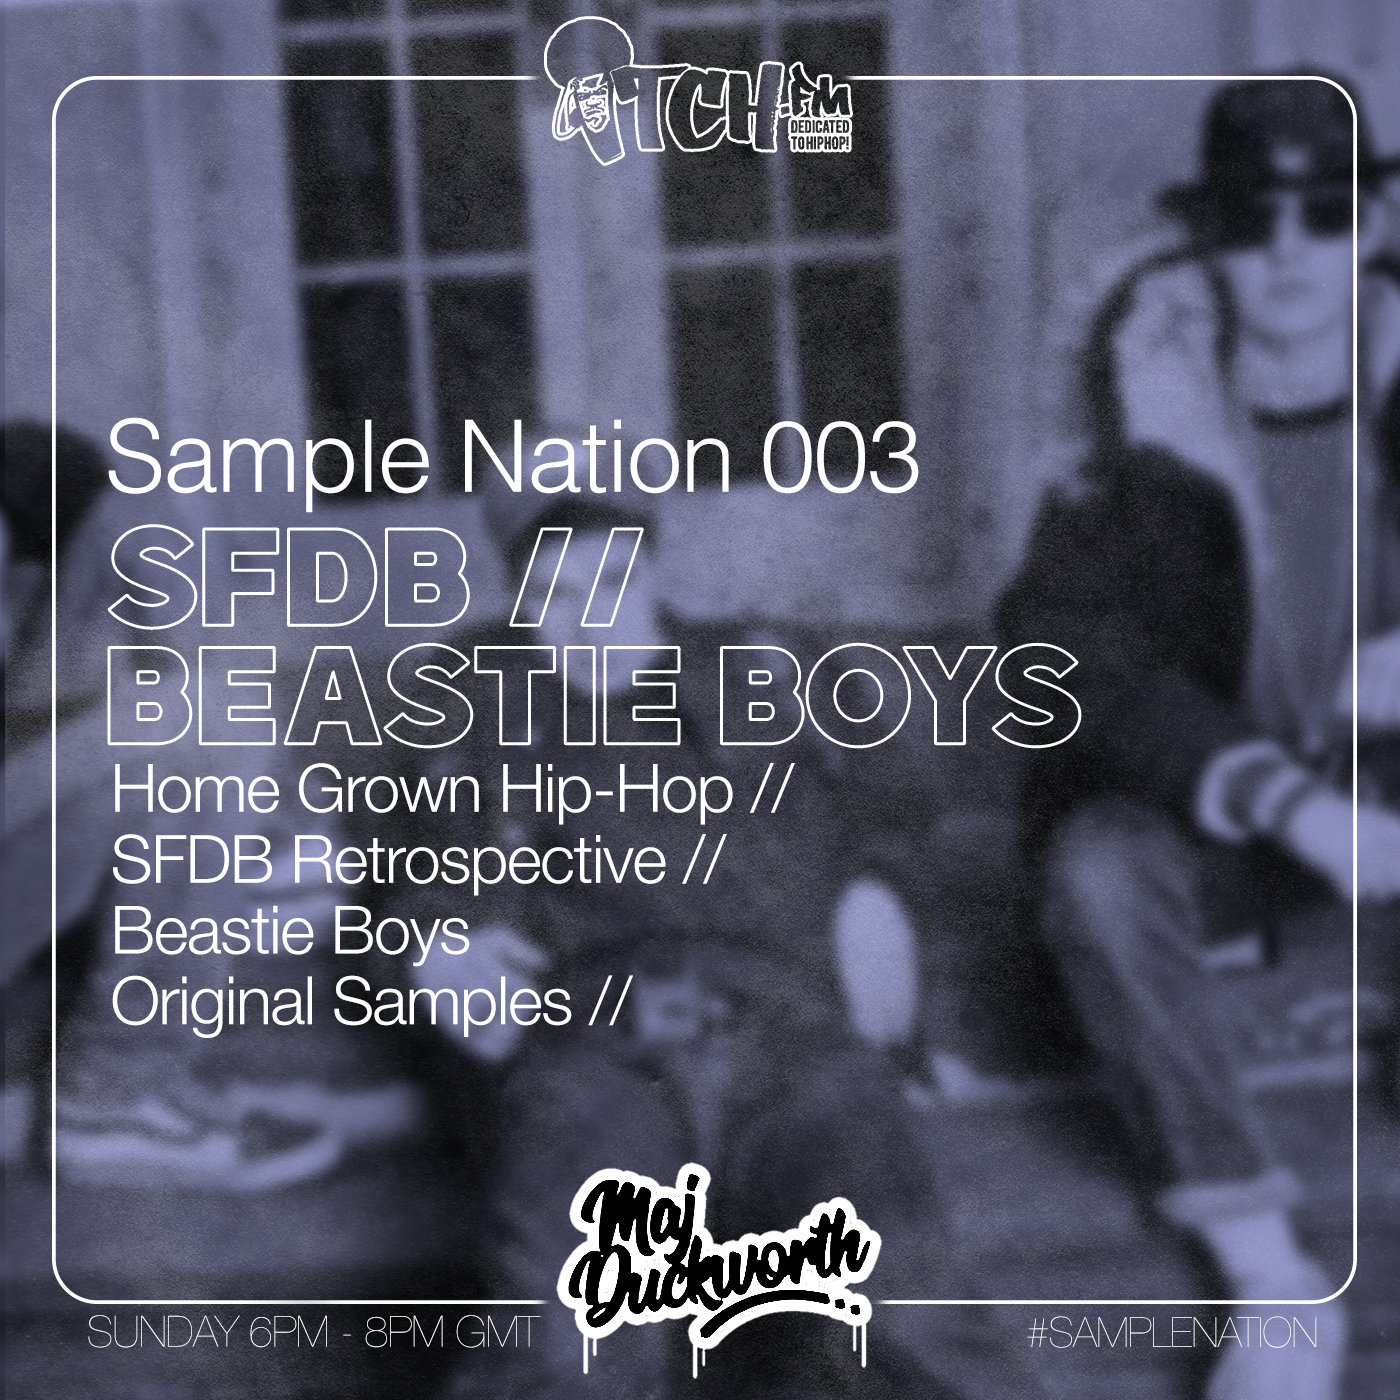 003 Sample Nation - Beastie Boys SFDB